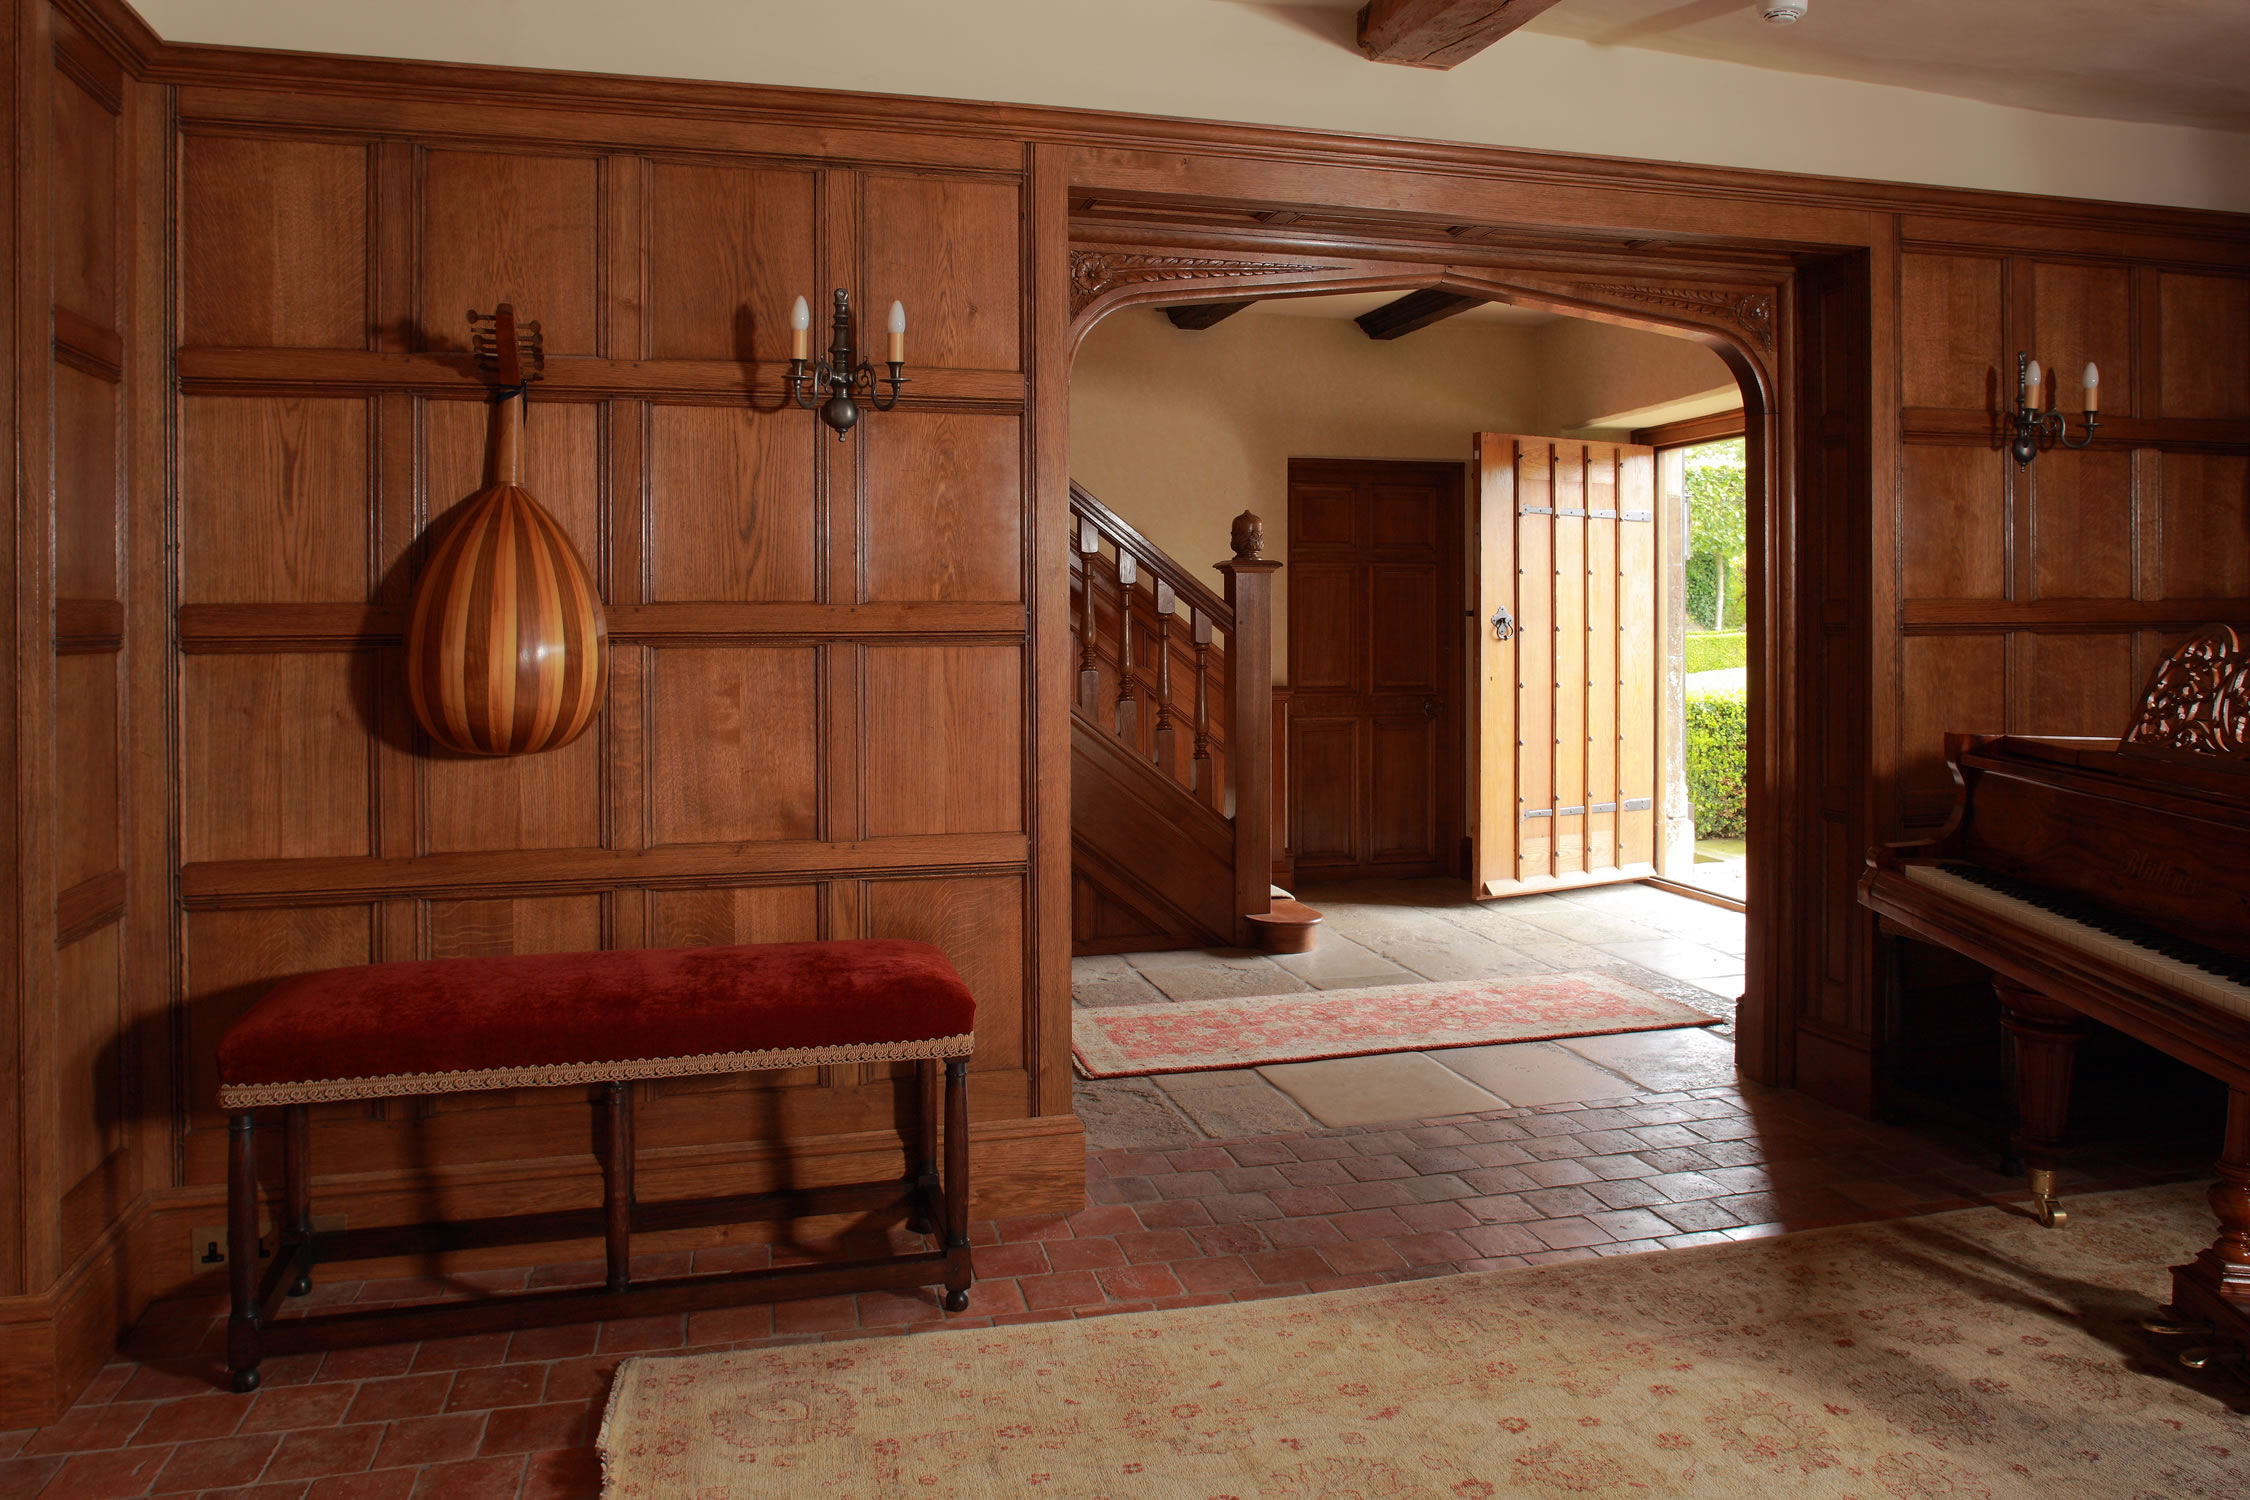 Soild oak panelling, staircase and entrance door